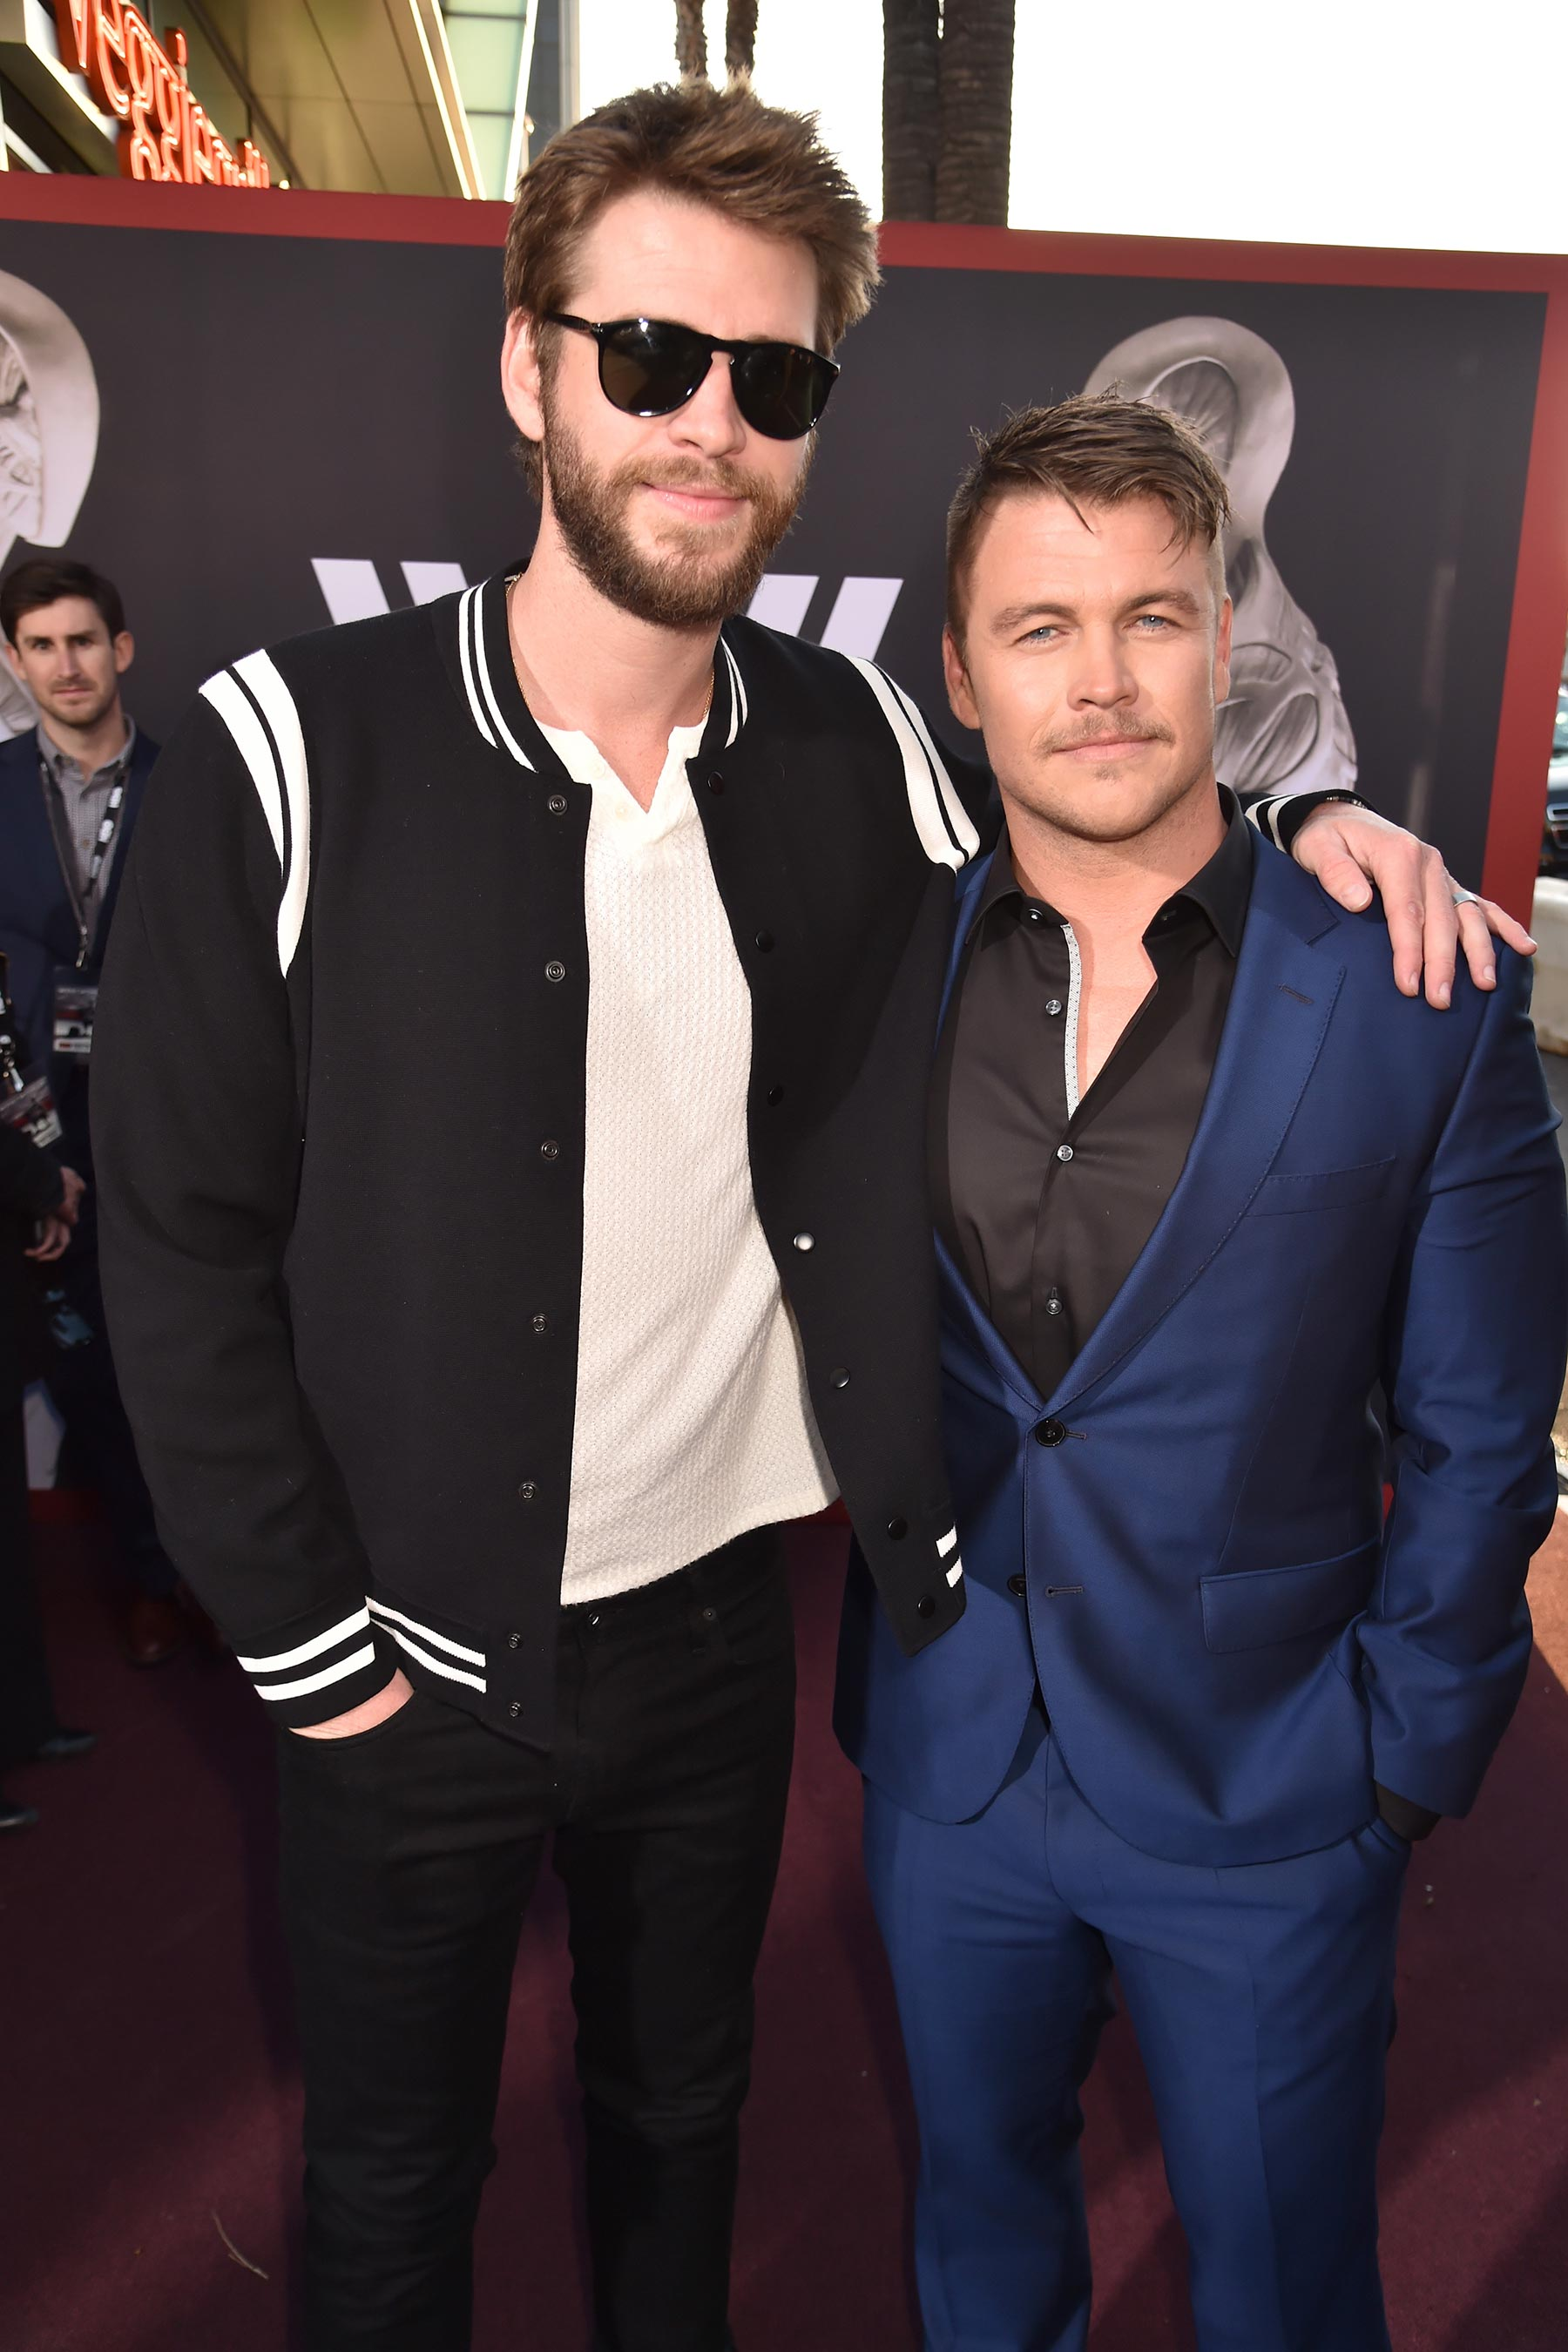 Liam Hemsworth és Luke Hemsworth